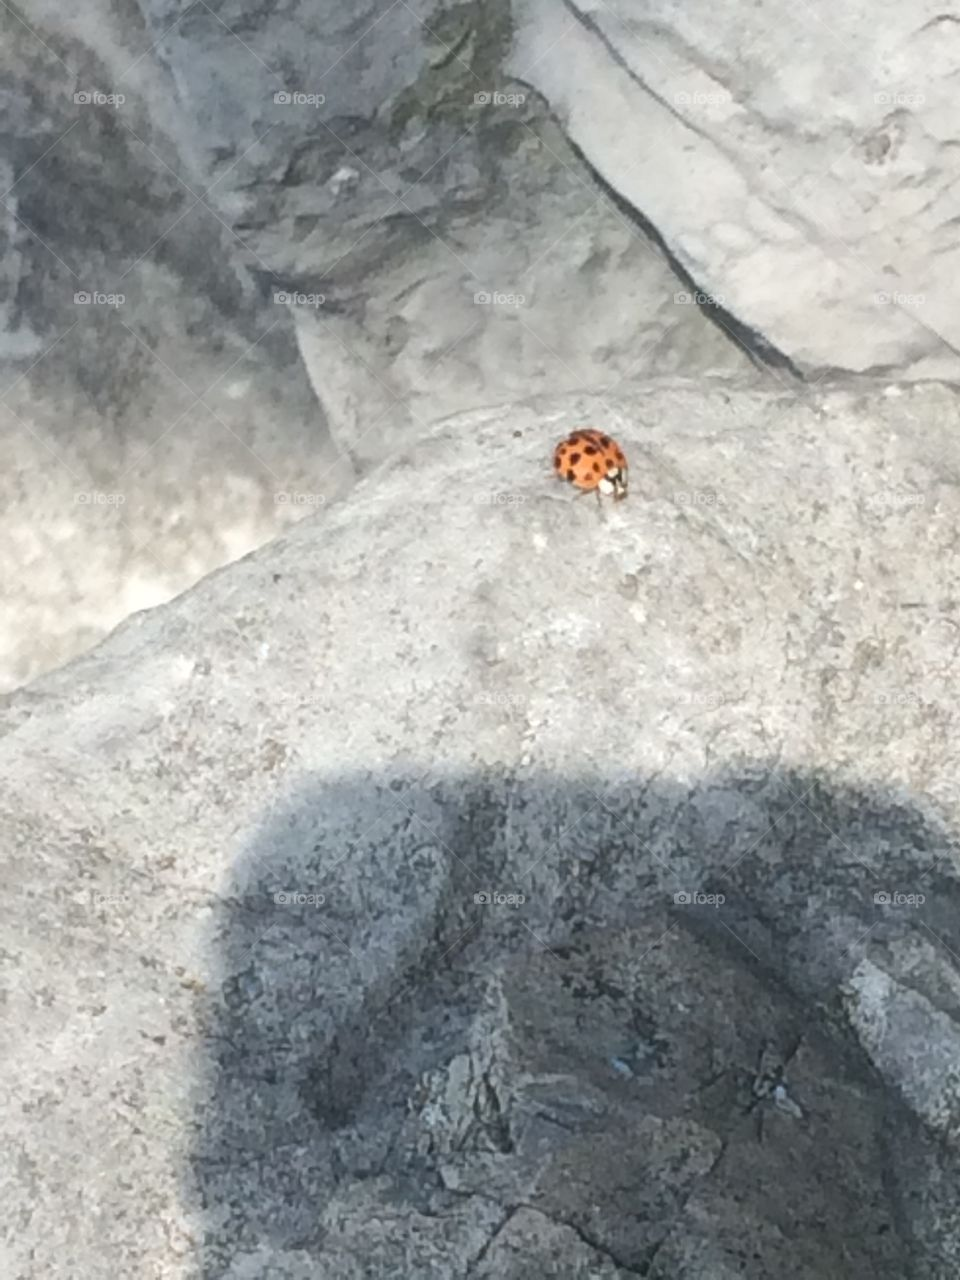 Pretty orange and black ladybug walking on a rock during the summer.